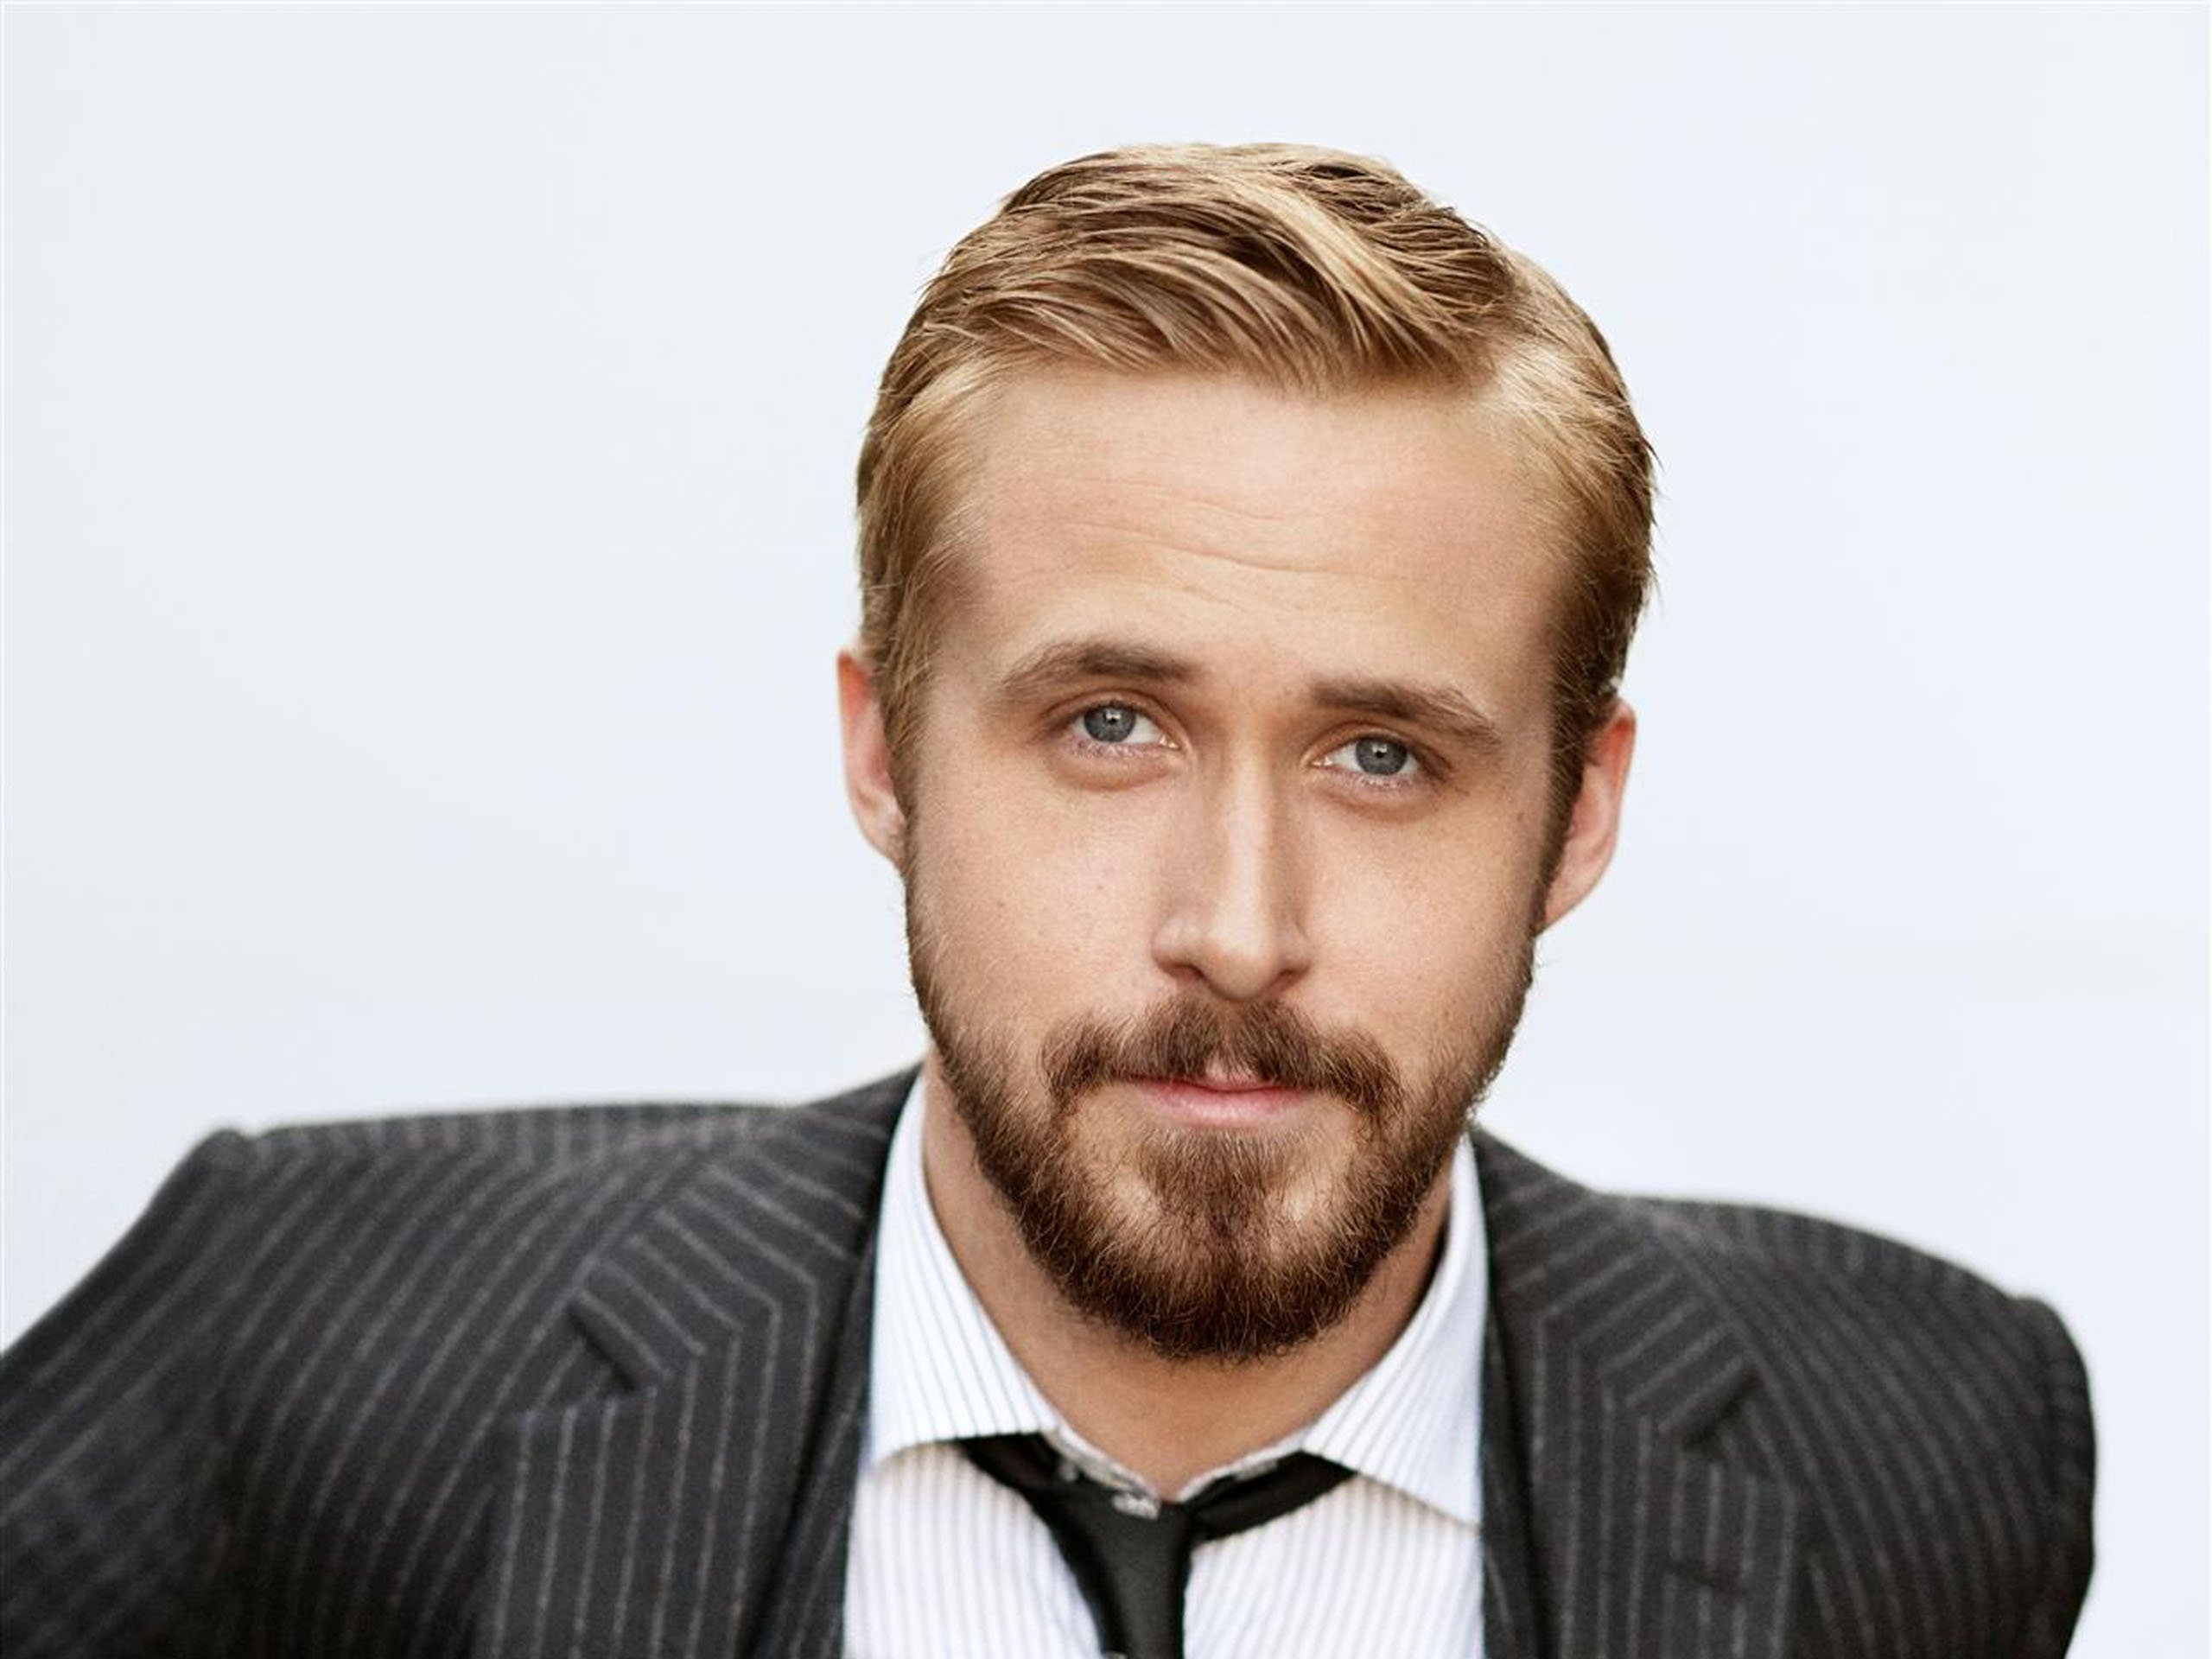 Ryan Gosling rumored for 'Star Wars' roles.